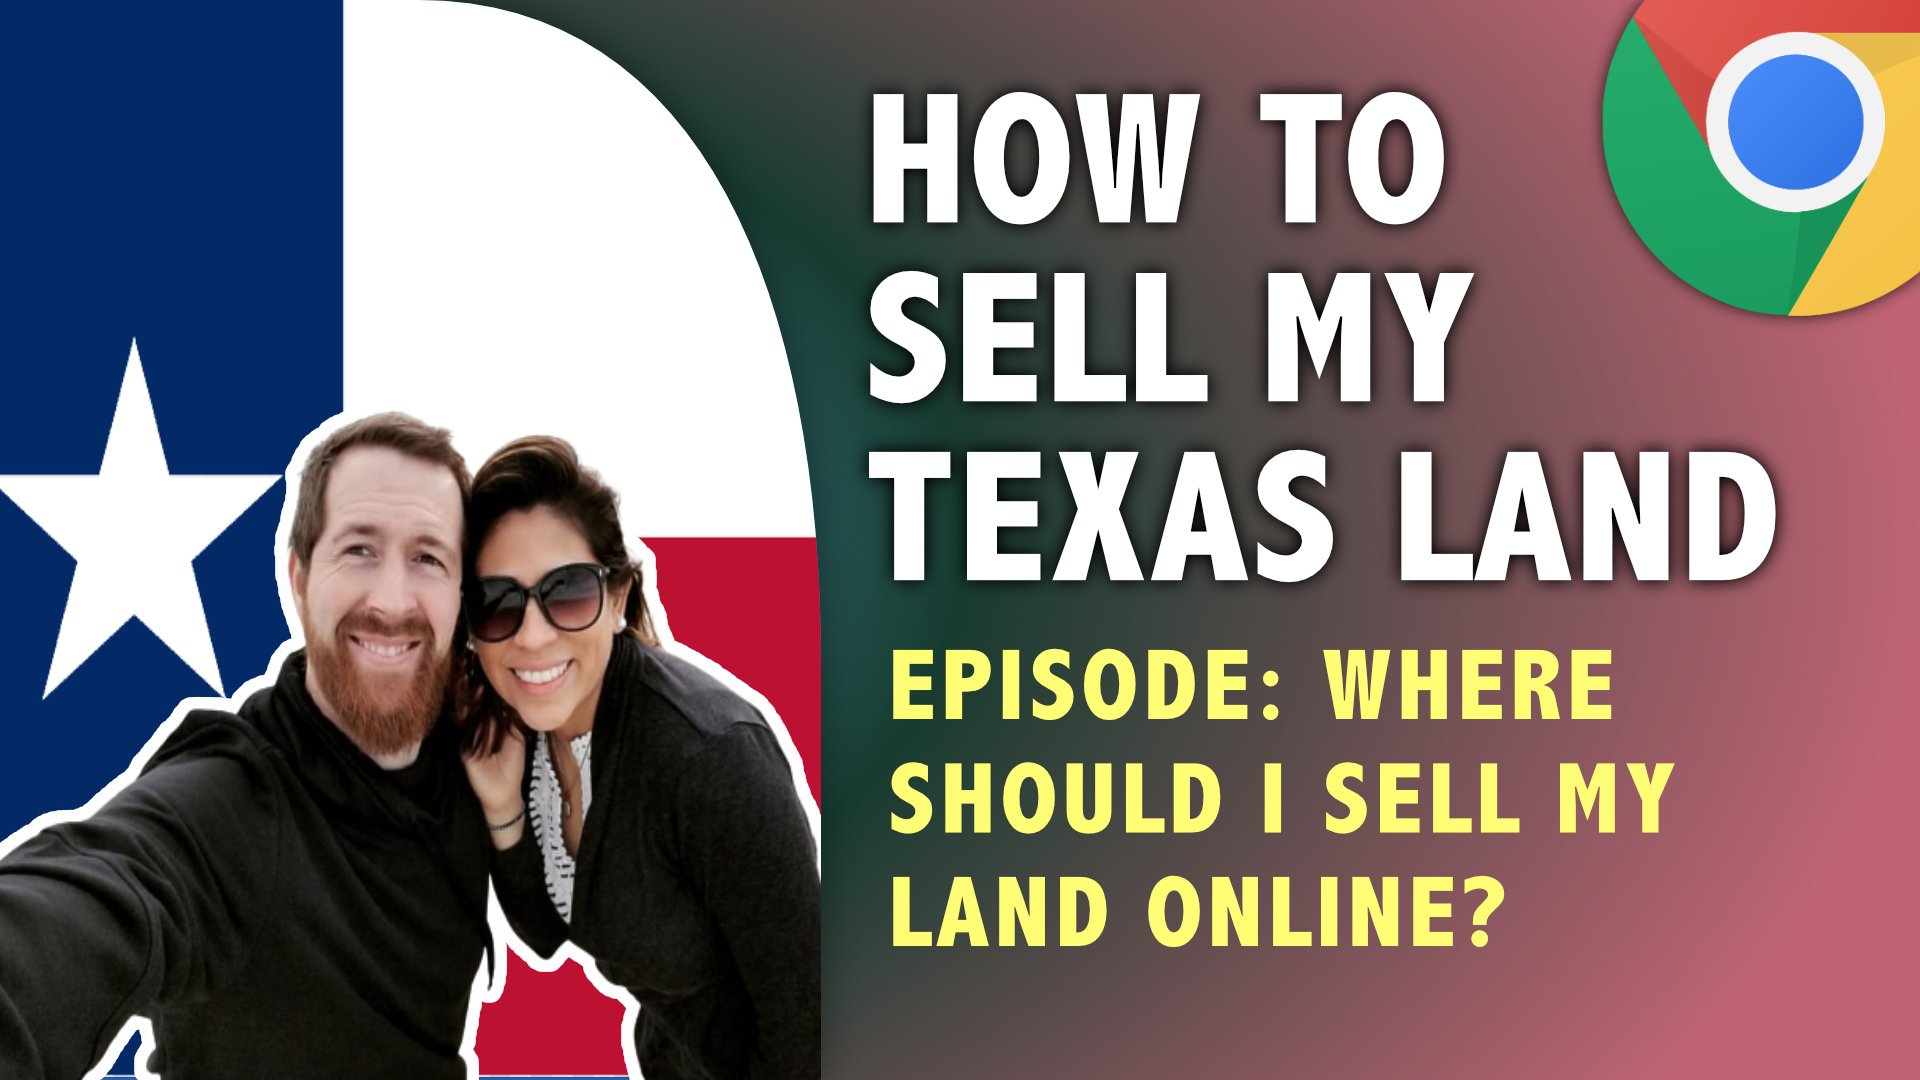 Sell My Texas Land Where Should I Sell My Land Online, Checklands